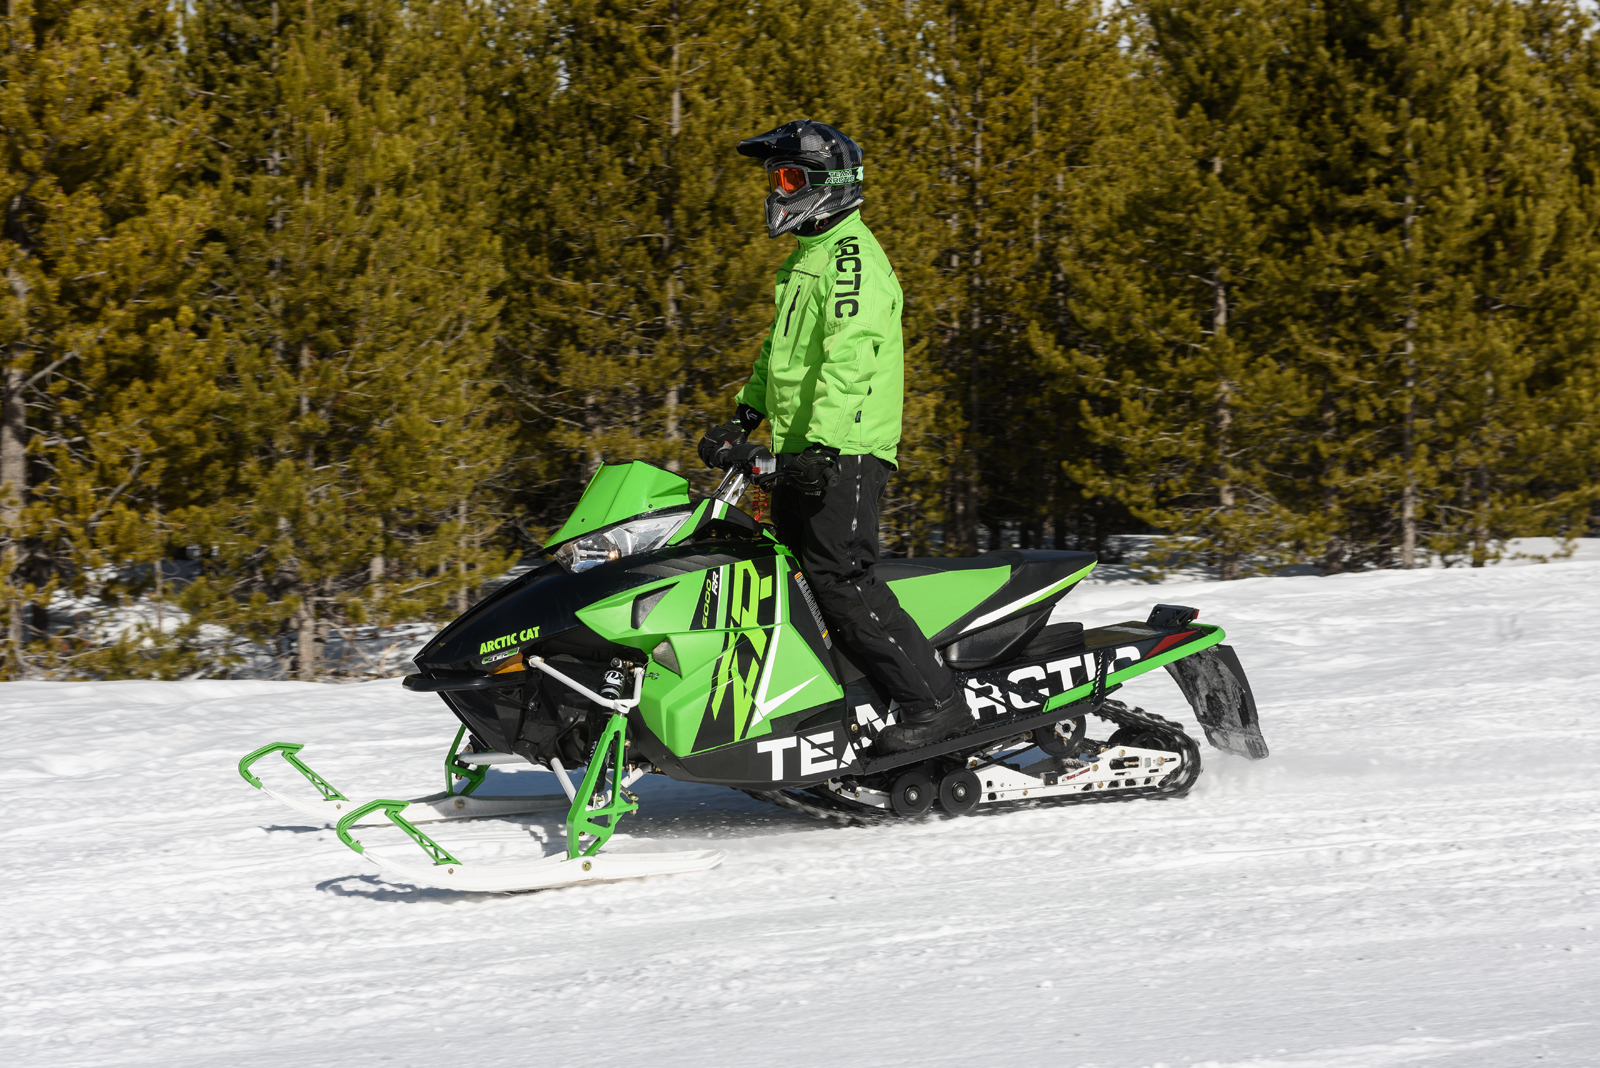 an analysis of a safe snowmobile rider Never assume what another snowmobiler will do do all that you can to ensure  your safety and that of other riders expect the unexpected watch out for: thin ice .